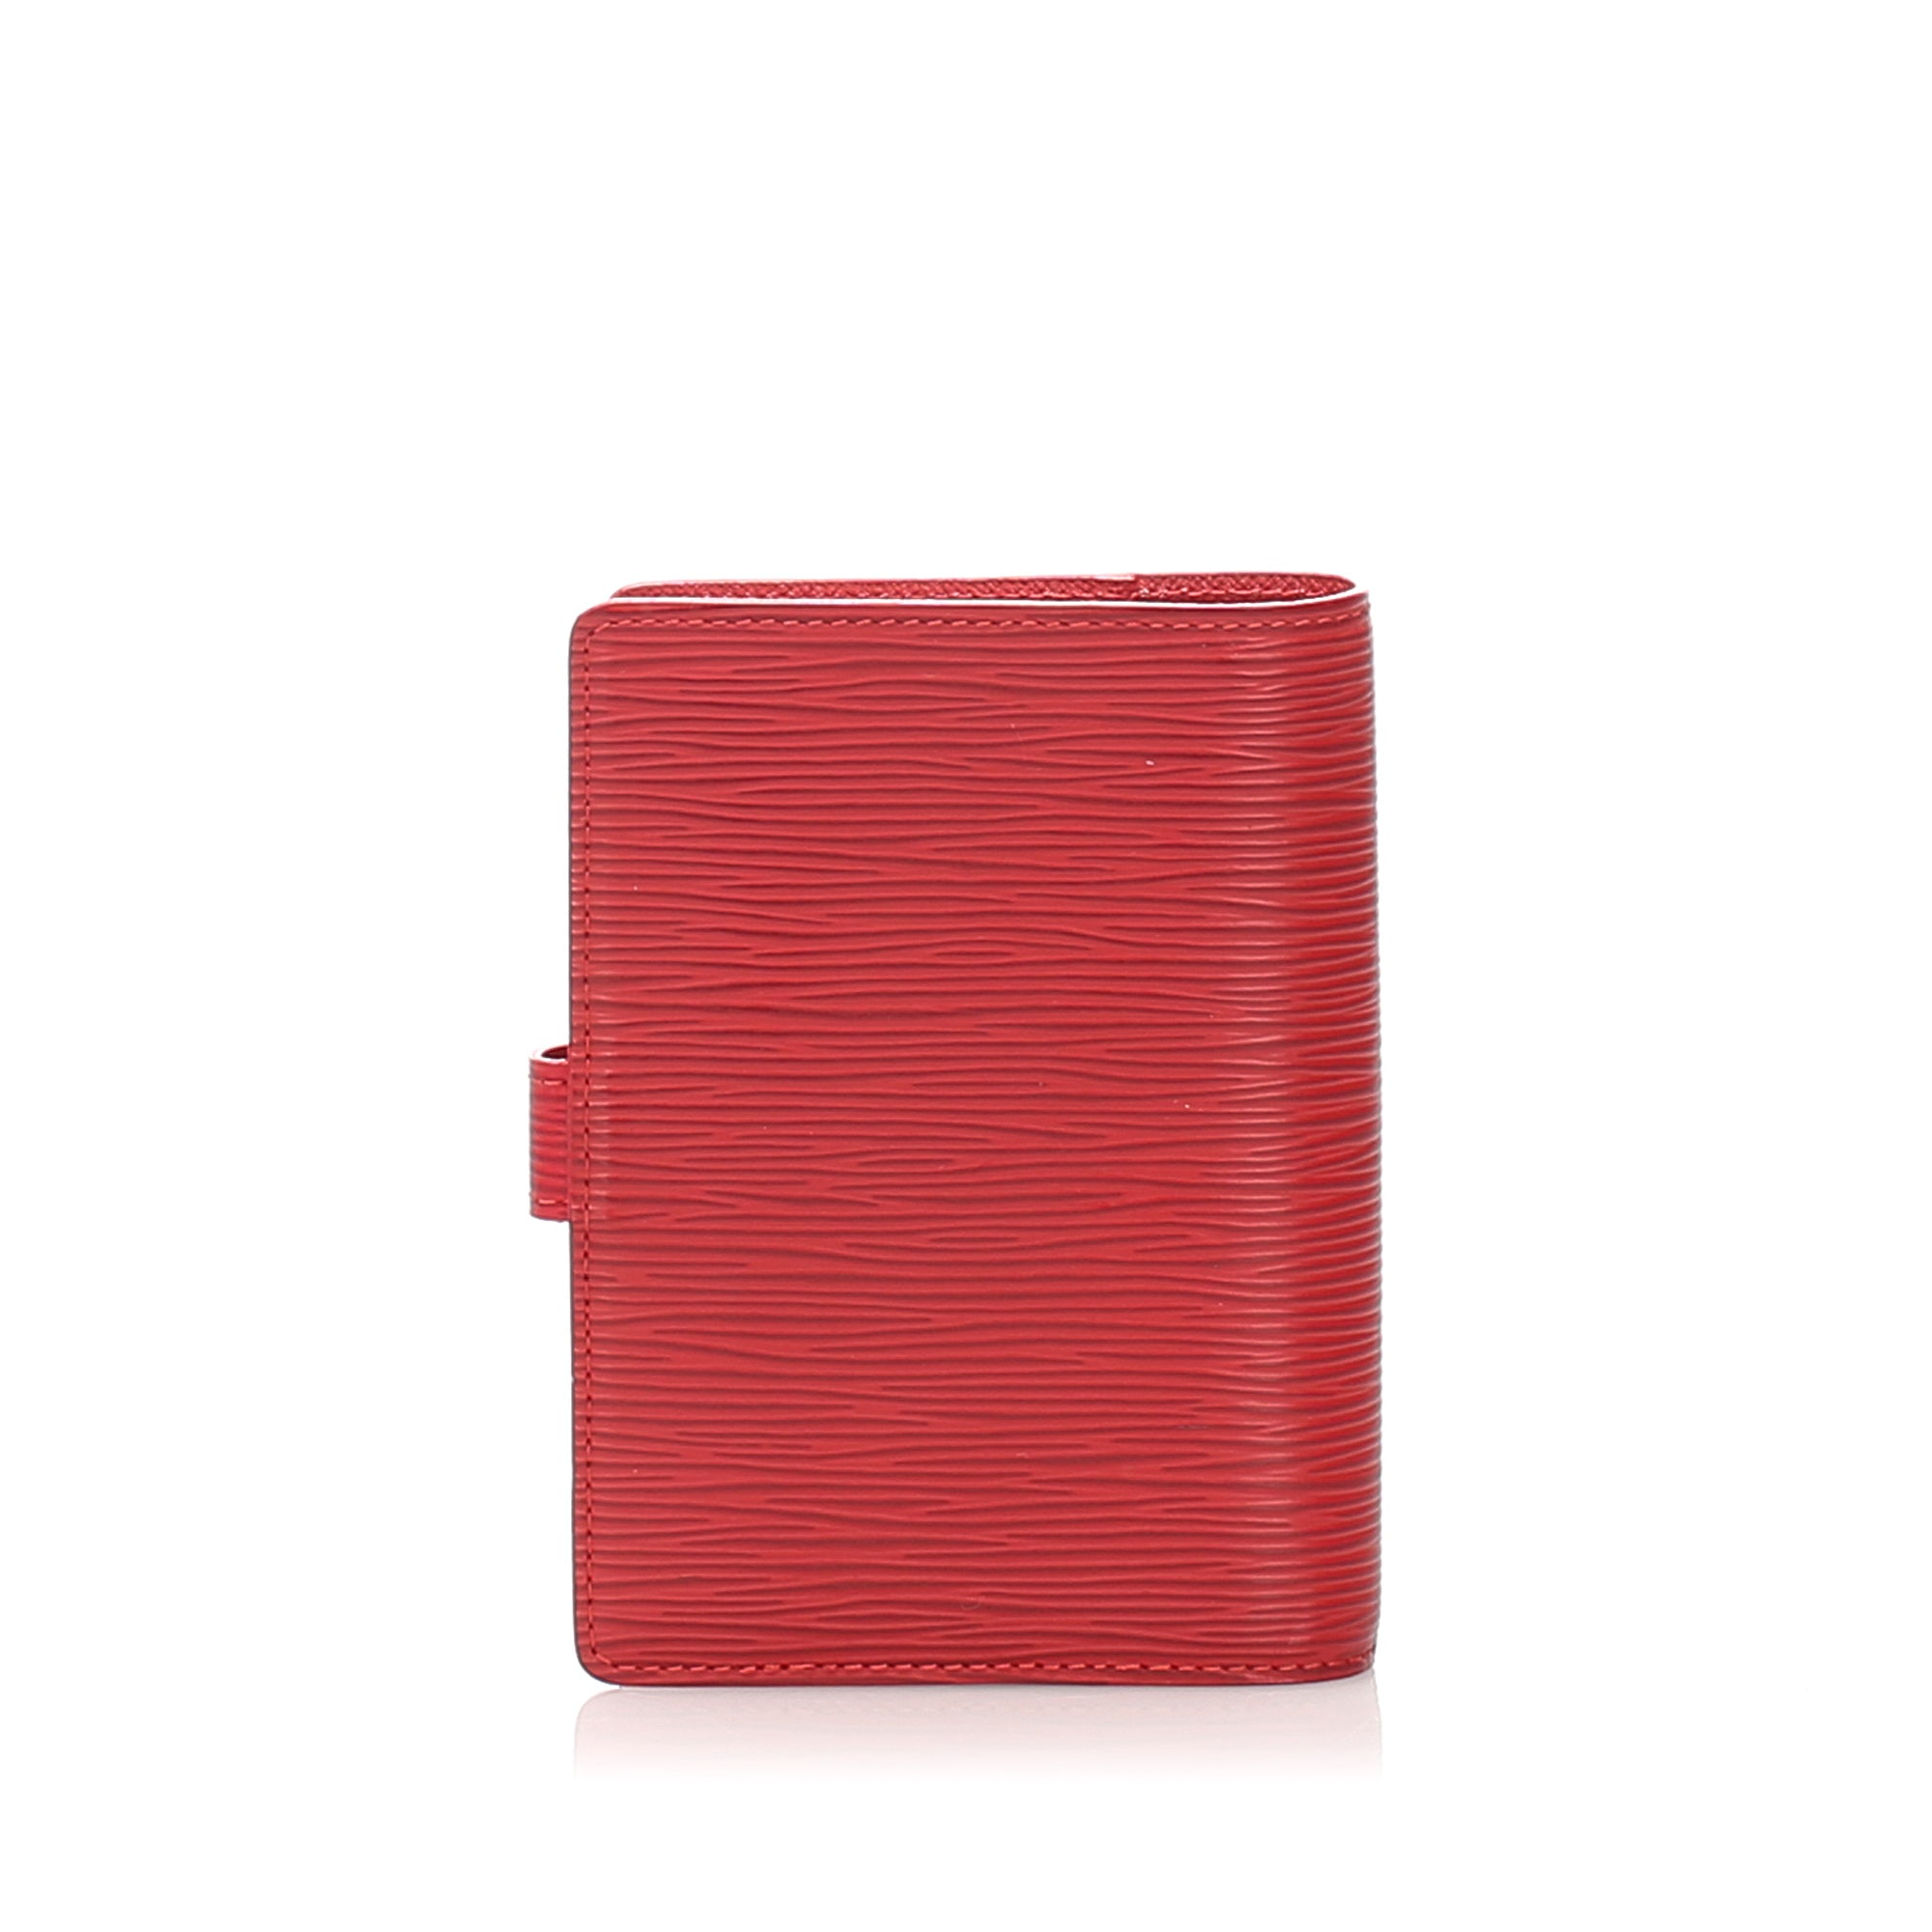 Louis Vuitton Red Epi Agenda PM